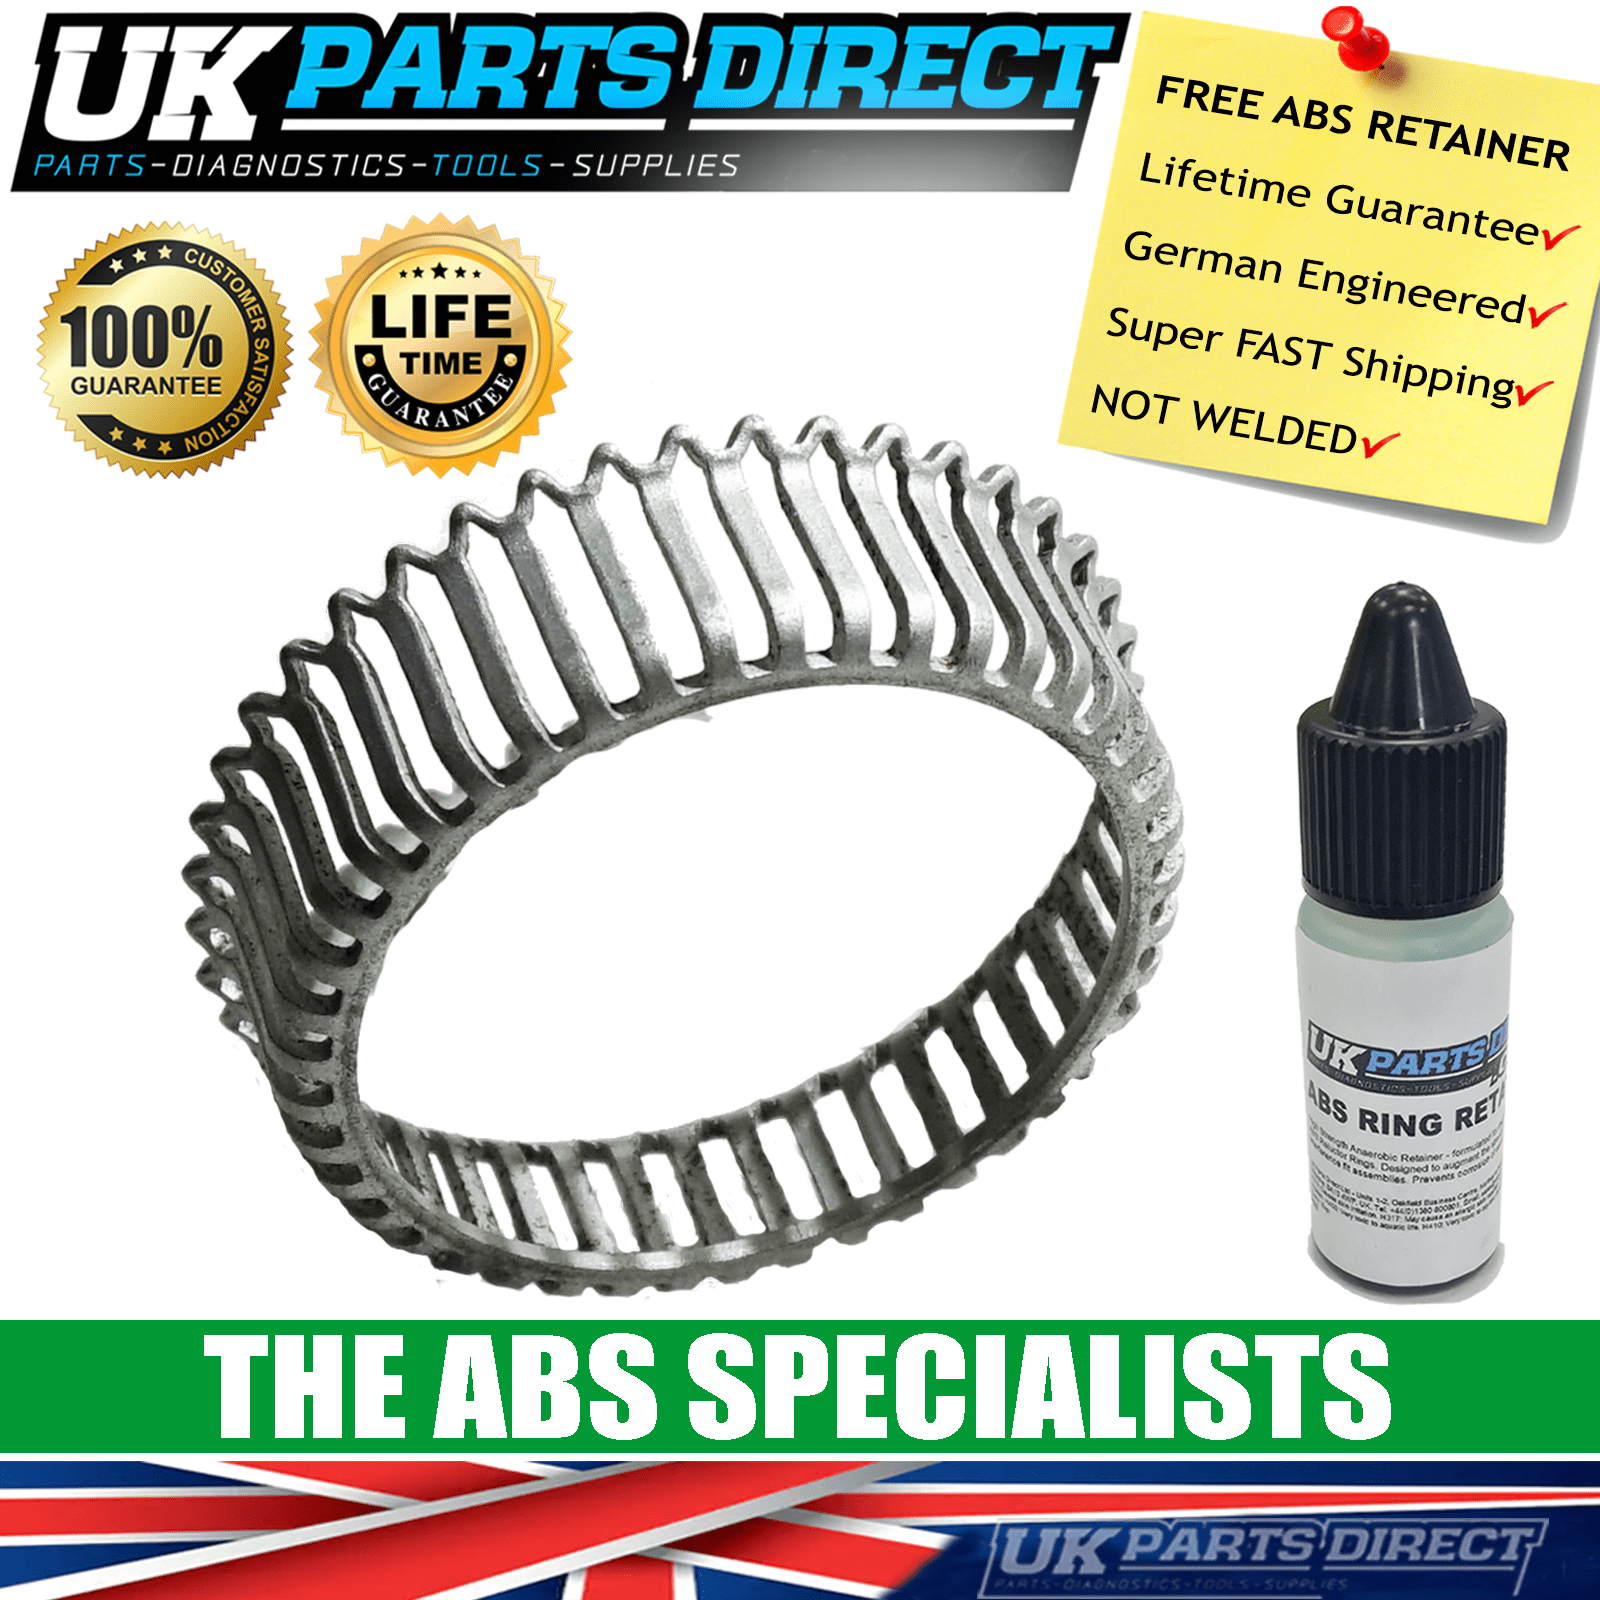 FORD MAVERICK ABS RING-ABS RELUCTOR RING-DRIVESHAFT ABS RING-CV JOINT ABS RING